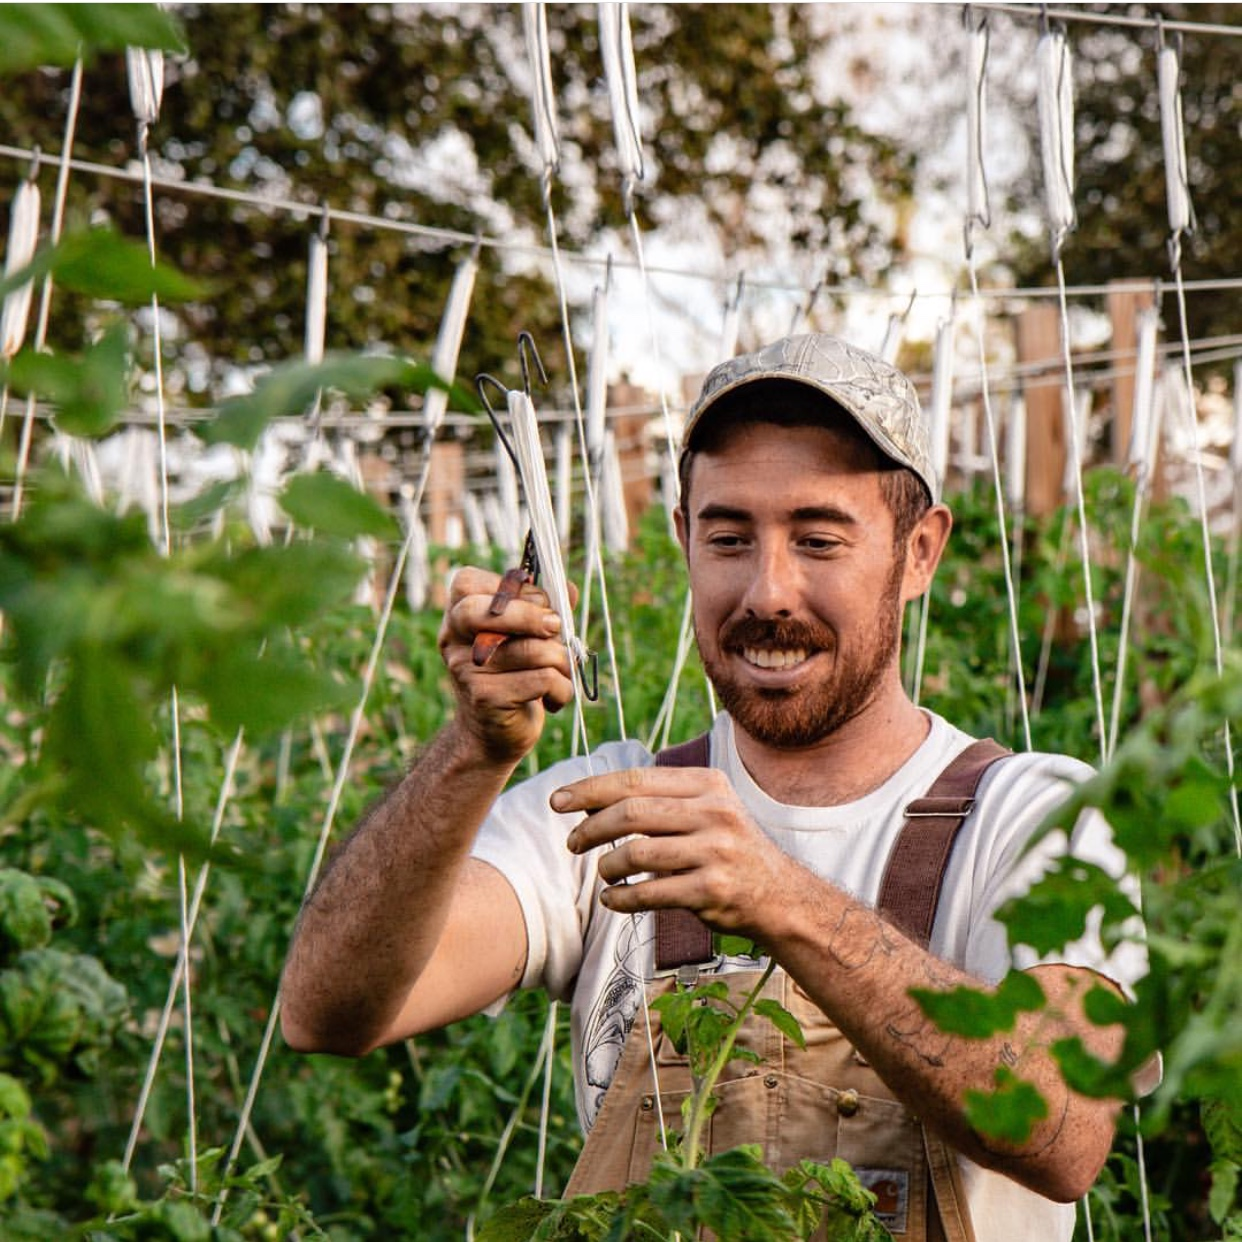 Mike Meier  Mike is manager of Colab Farms, a hydroponic specialty veg farm in Martin County, FL. Previously, they were cofounder and farmer at Ground Floor Farm in Stuart, farmer at Seven Arrows Farm in NJ, and farm manager of Brooklyn Grange in NYC.